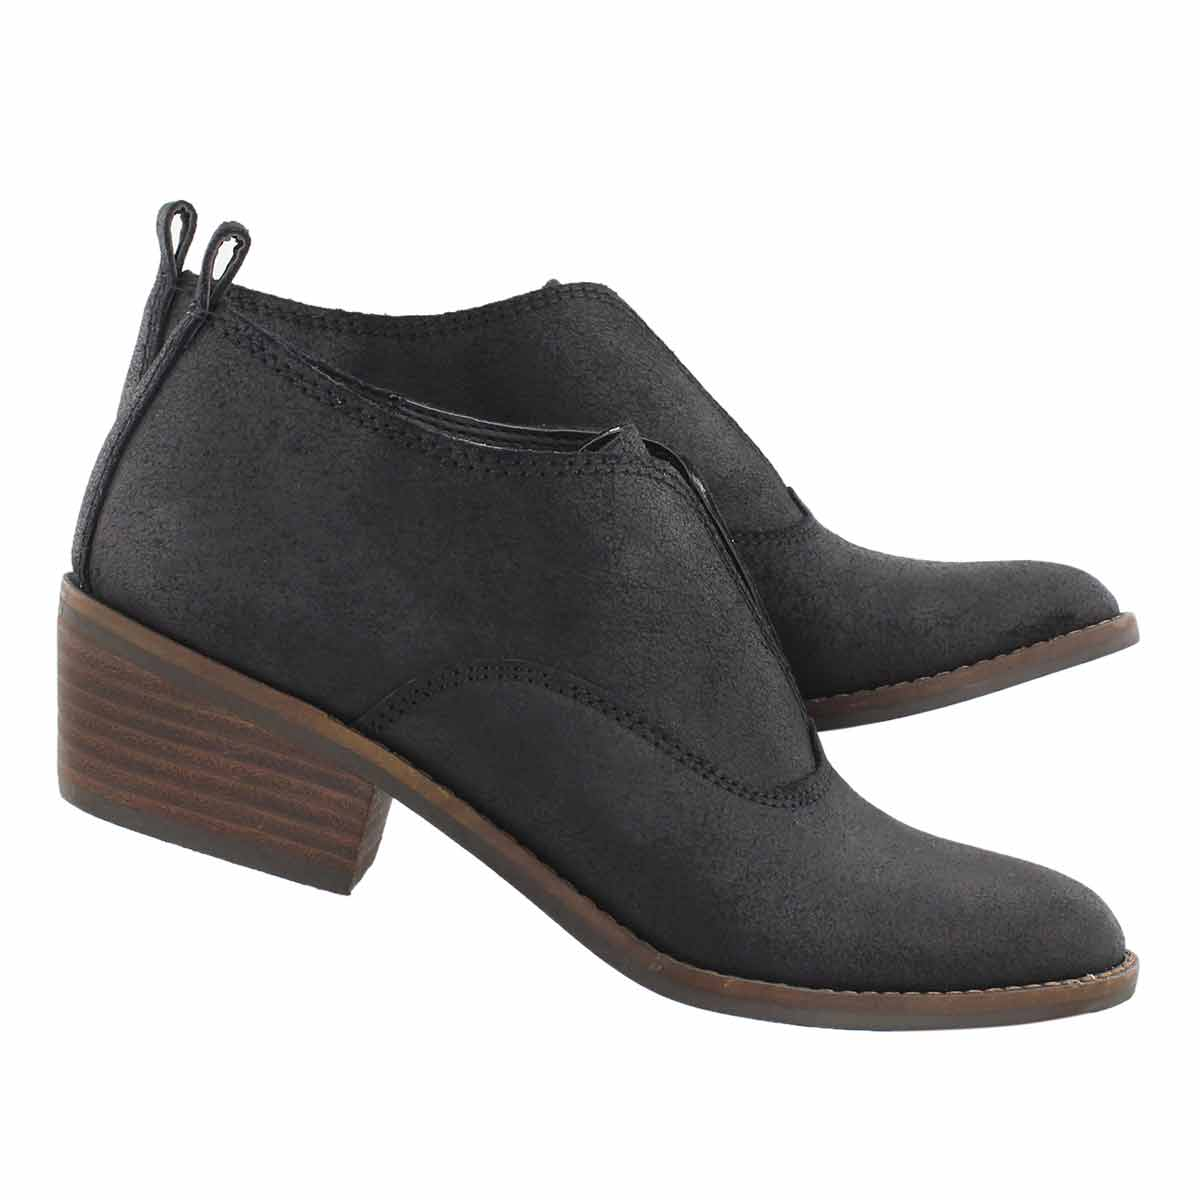 Lds Fimberly black low casual boot